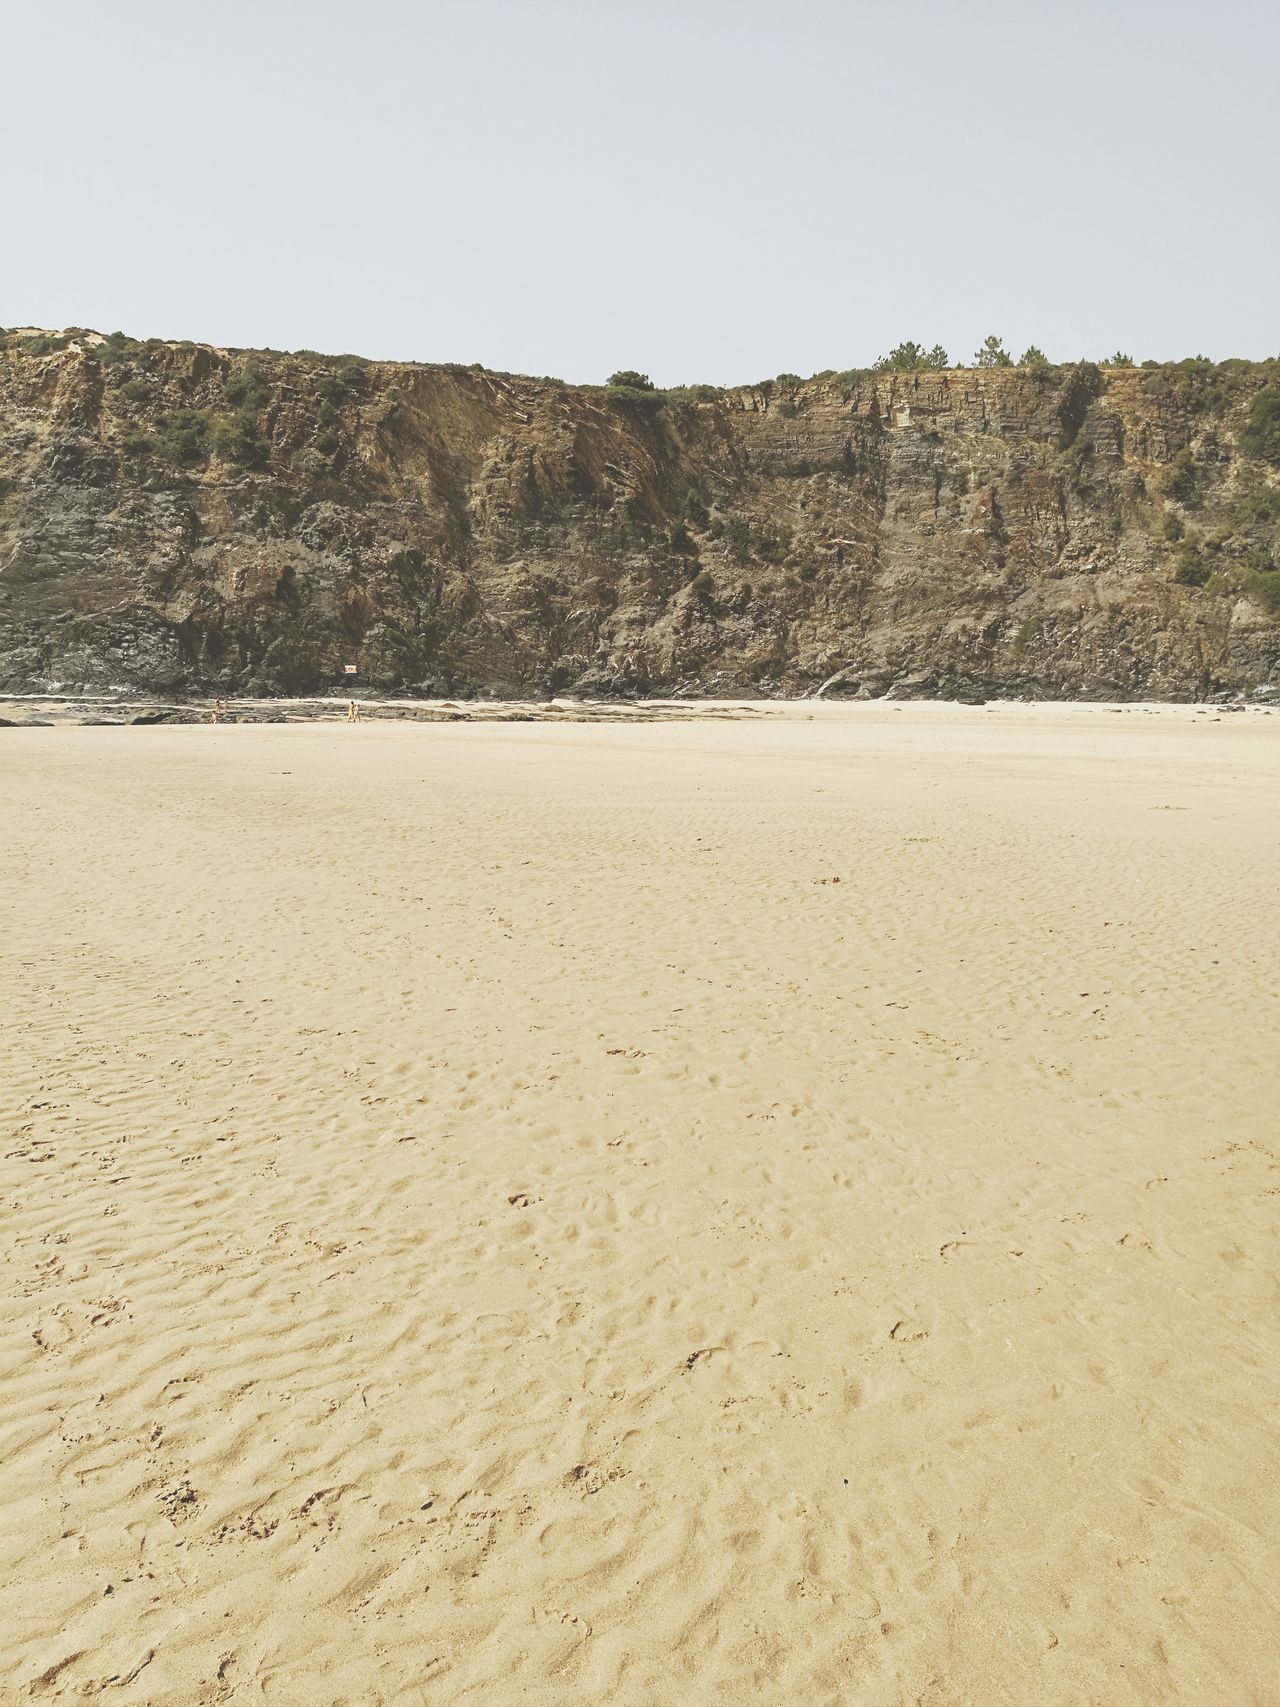 Sand Nature Beach No People Hill Sky Landscape Clear Sky Sand Dune Outdoors Tranquility Odeceixe Summer Scenics Beach Photography Algarve Alentejo Wall Rock Formation Falésia Beachphotography